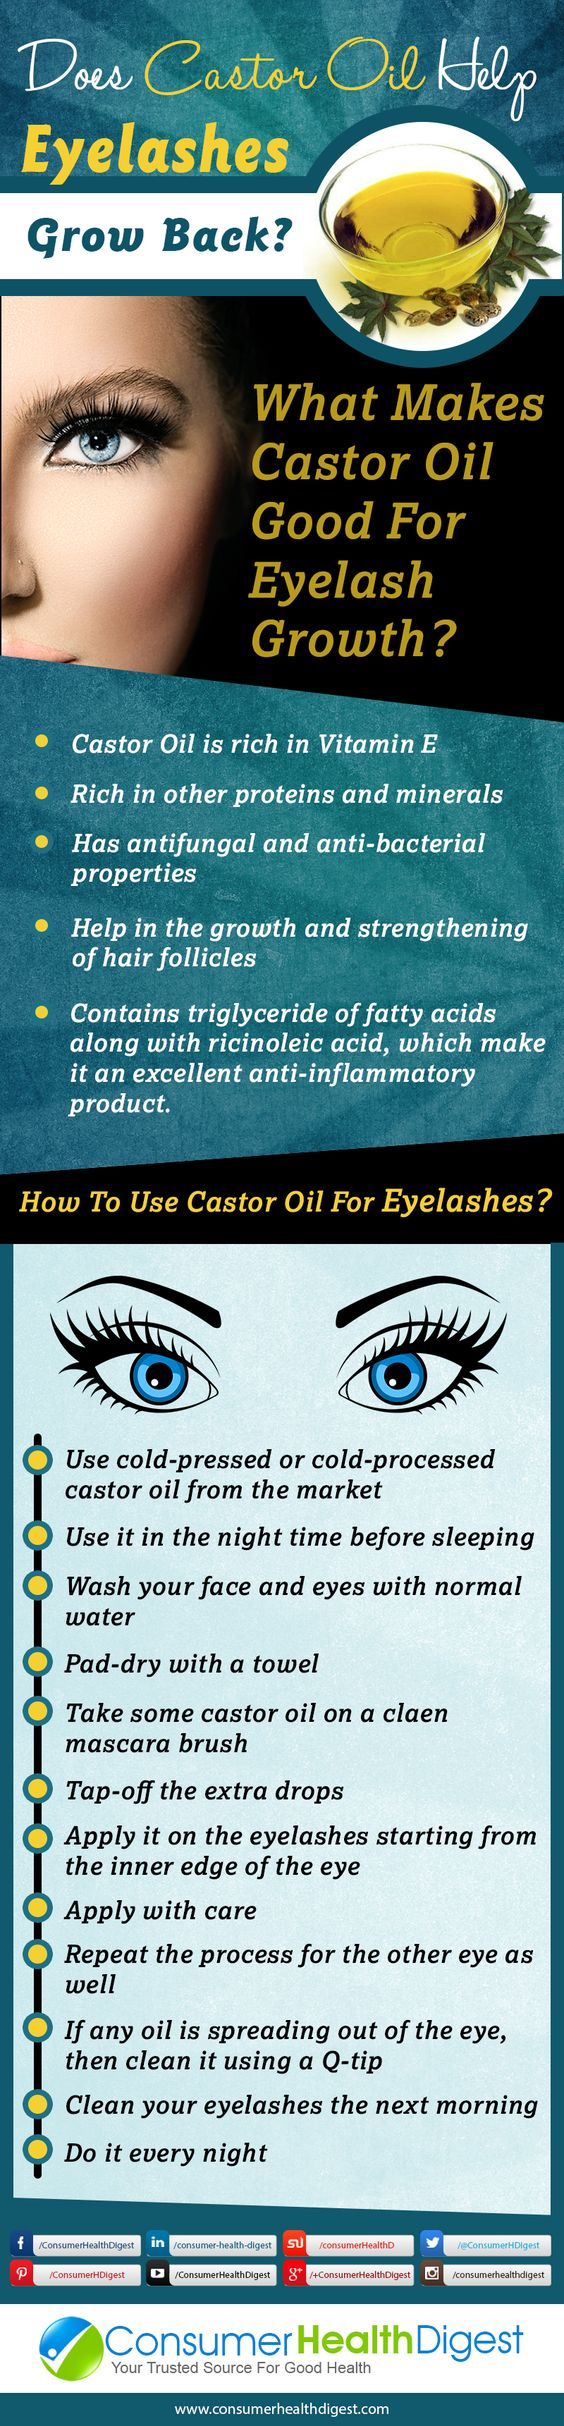 Does #CastorOil Help #Eyelashes Grow Back?  Get the answer: https://www.consumerhealthdigest.com/eyelash-care/lash-care-faqs/does-castor-oil-help-eyelashes-grow-back.html